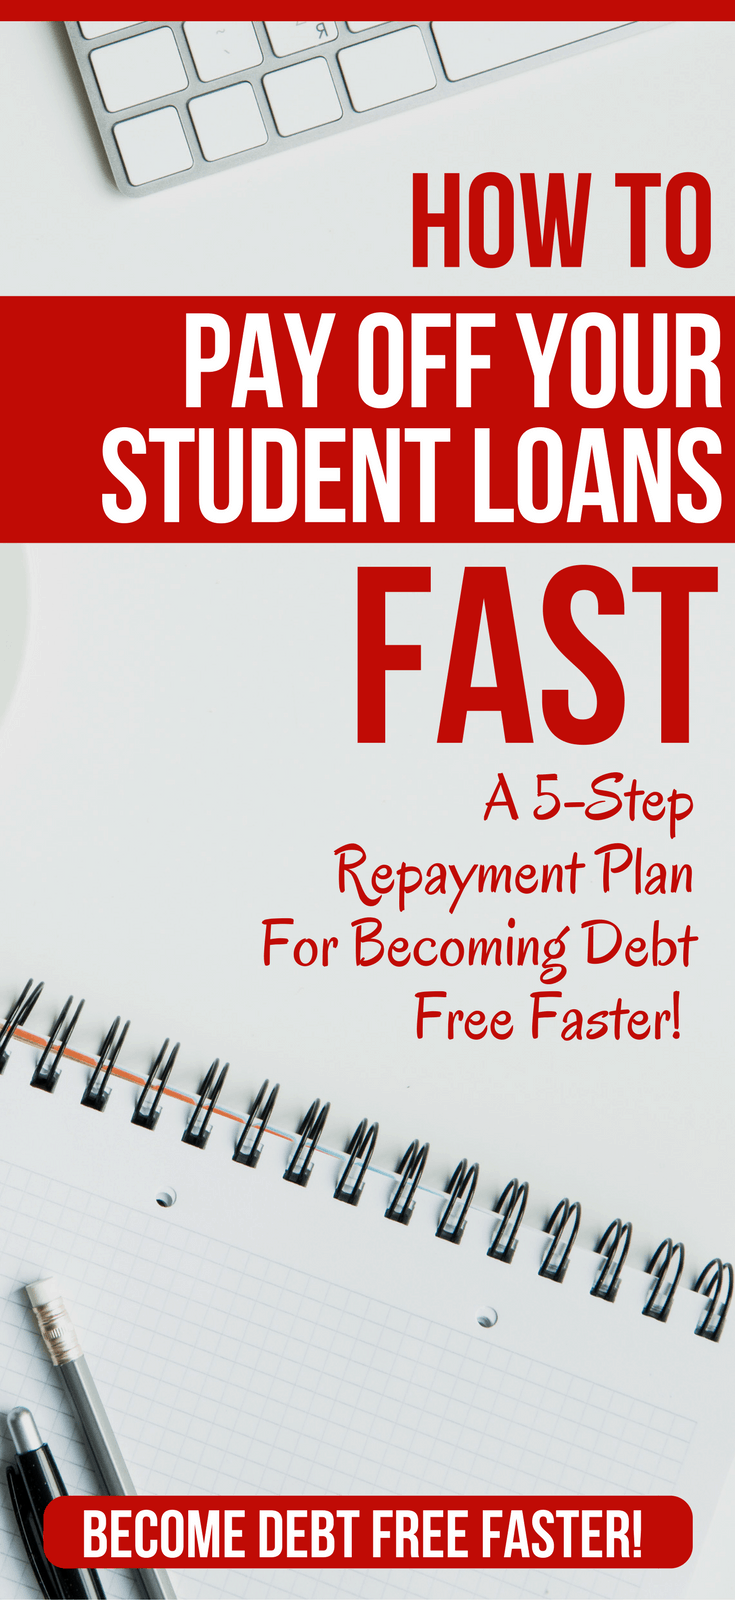 How to Pay Off Student Loans Fast in 2018   5 POWERFUL tips for paying off your student loans faster. Get out of debt faster, with this 5 step plan that works on any income.  student loans paying off | paying off student loans | paying off student loans tips | paying off student loans fast | pay off student loans  #debt #debtfree #studentloans #studentloan